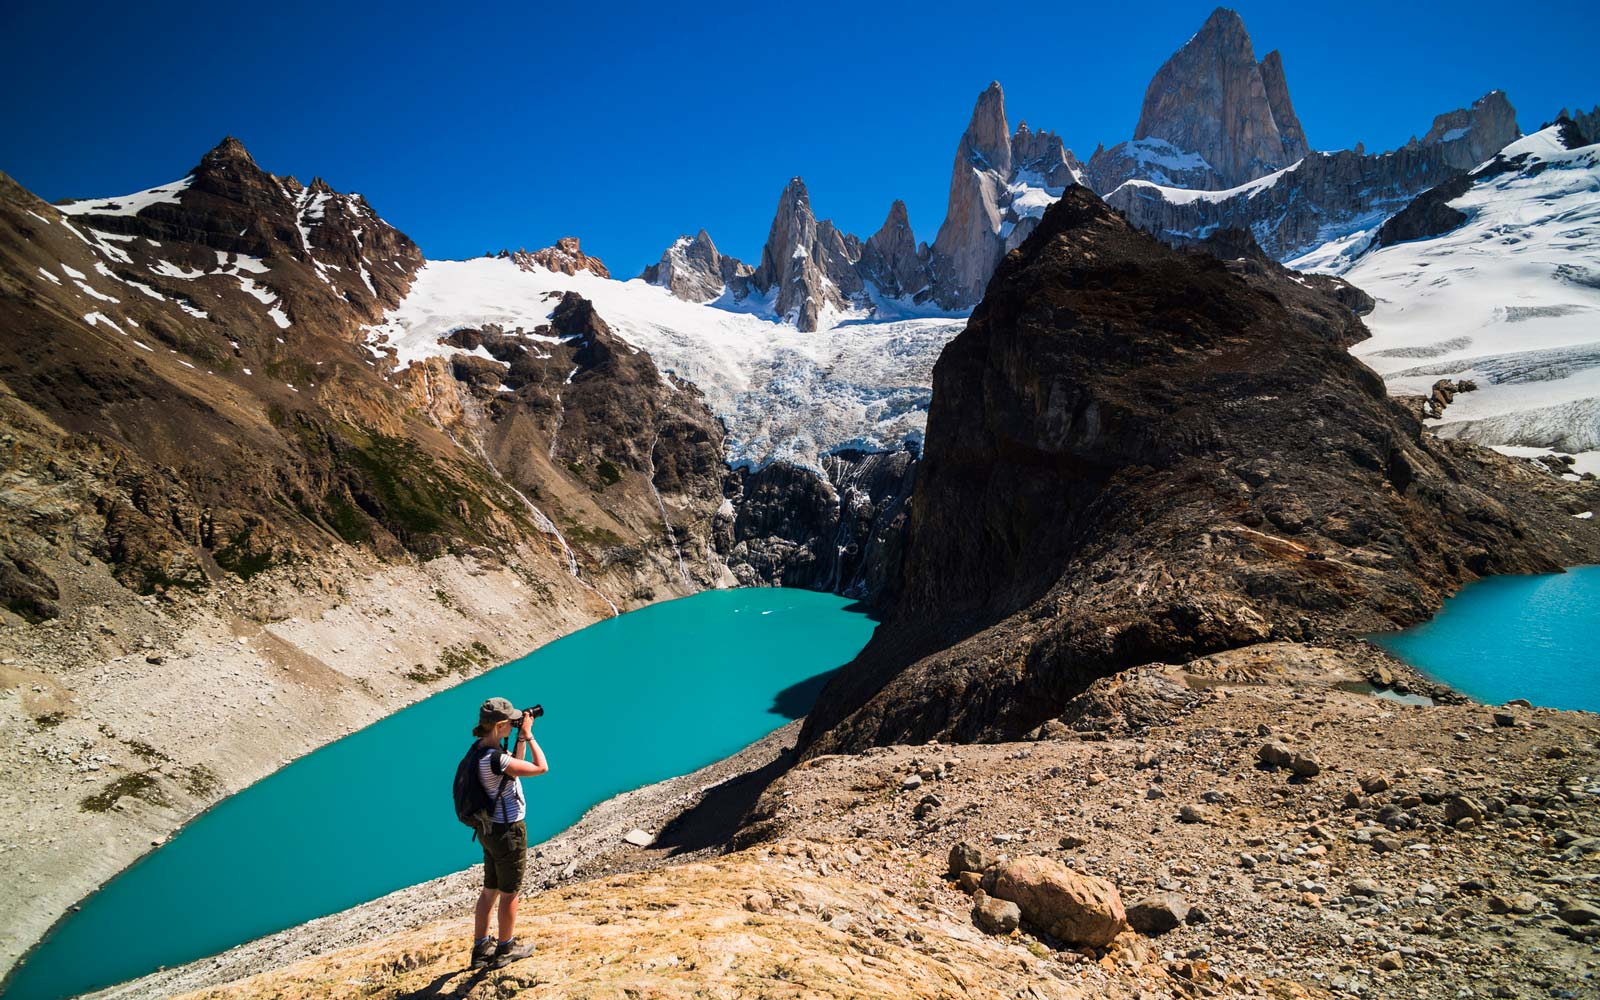 How to Make Money Off Your Travel Photos